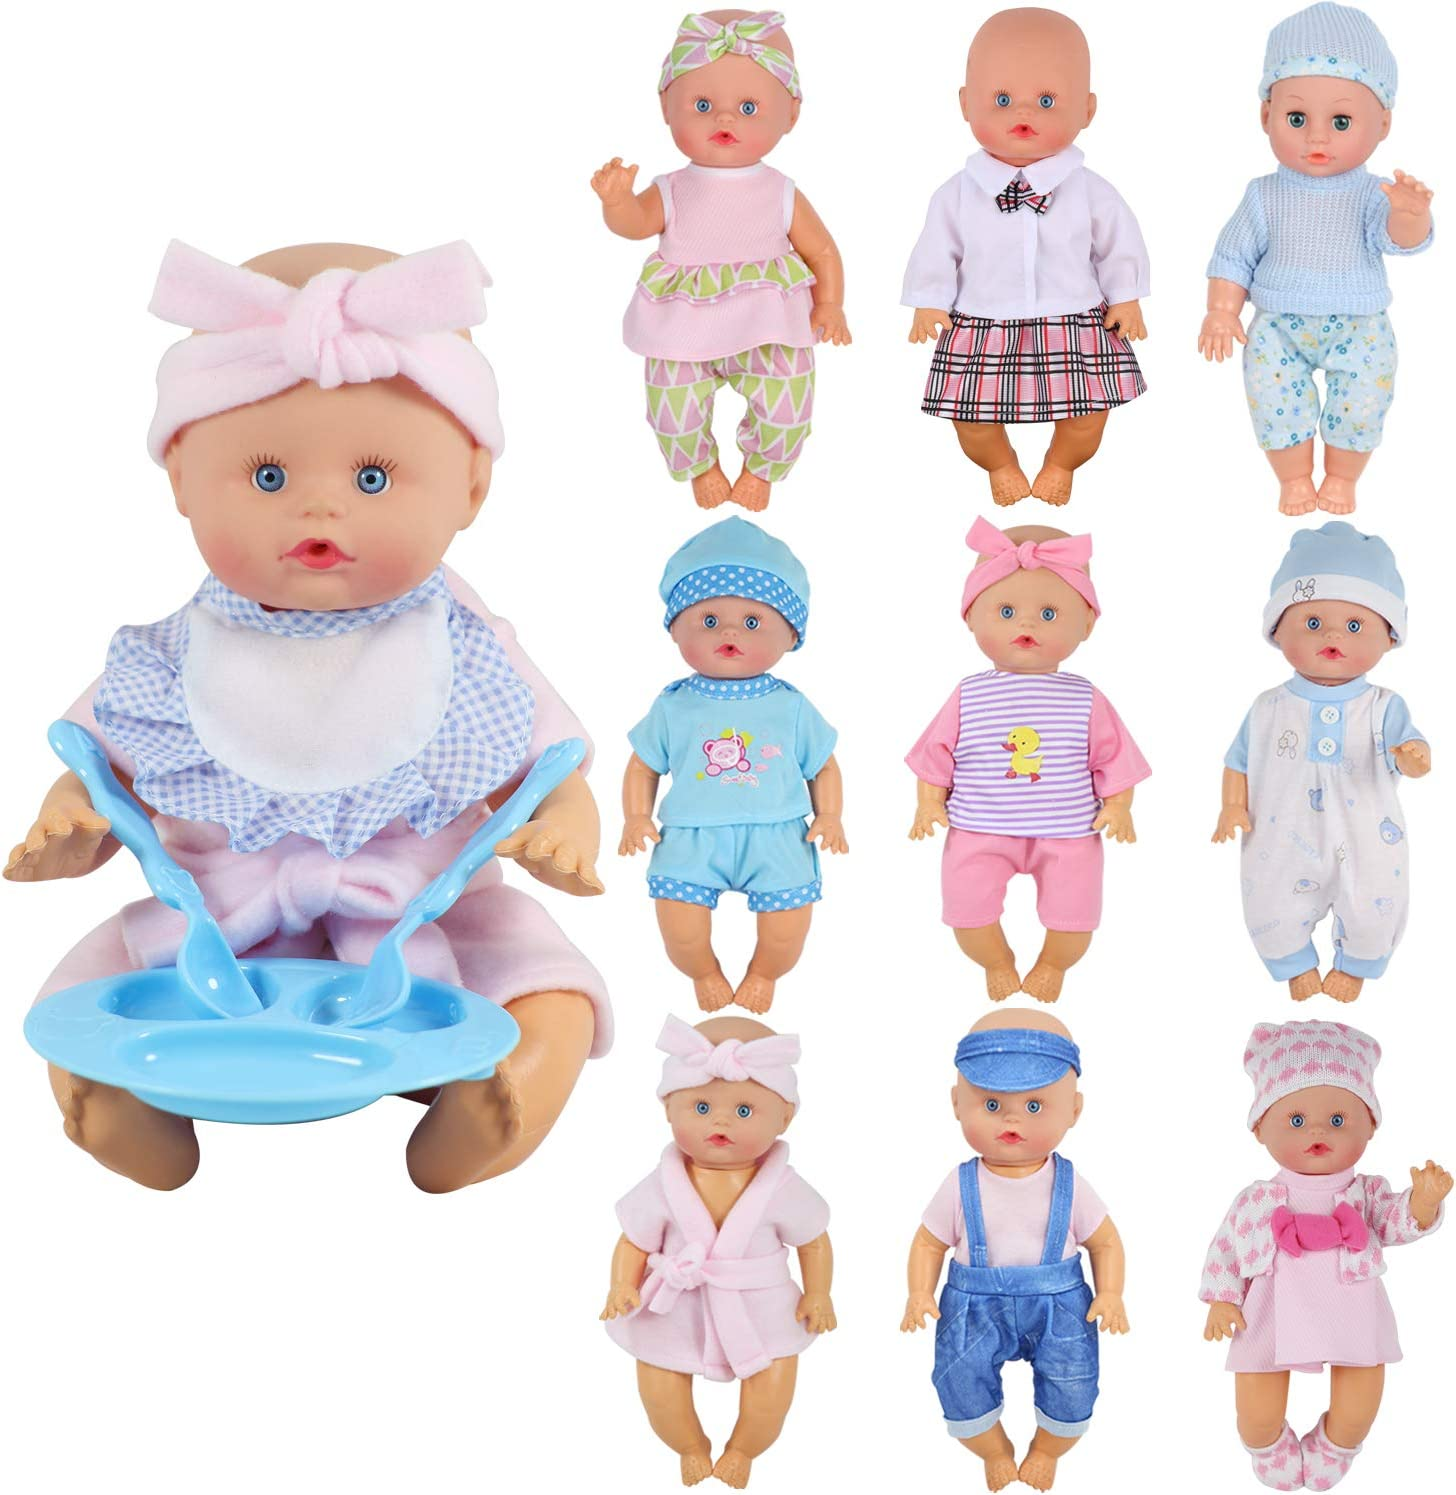 Doll Clothes Outfit Set for 10-11inch Reborn Dolls Clothes Wear Accessories